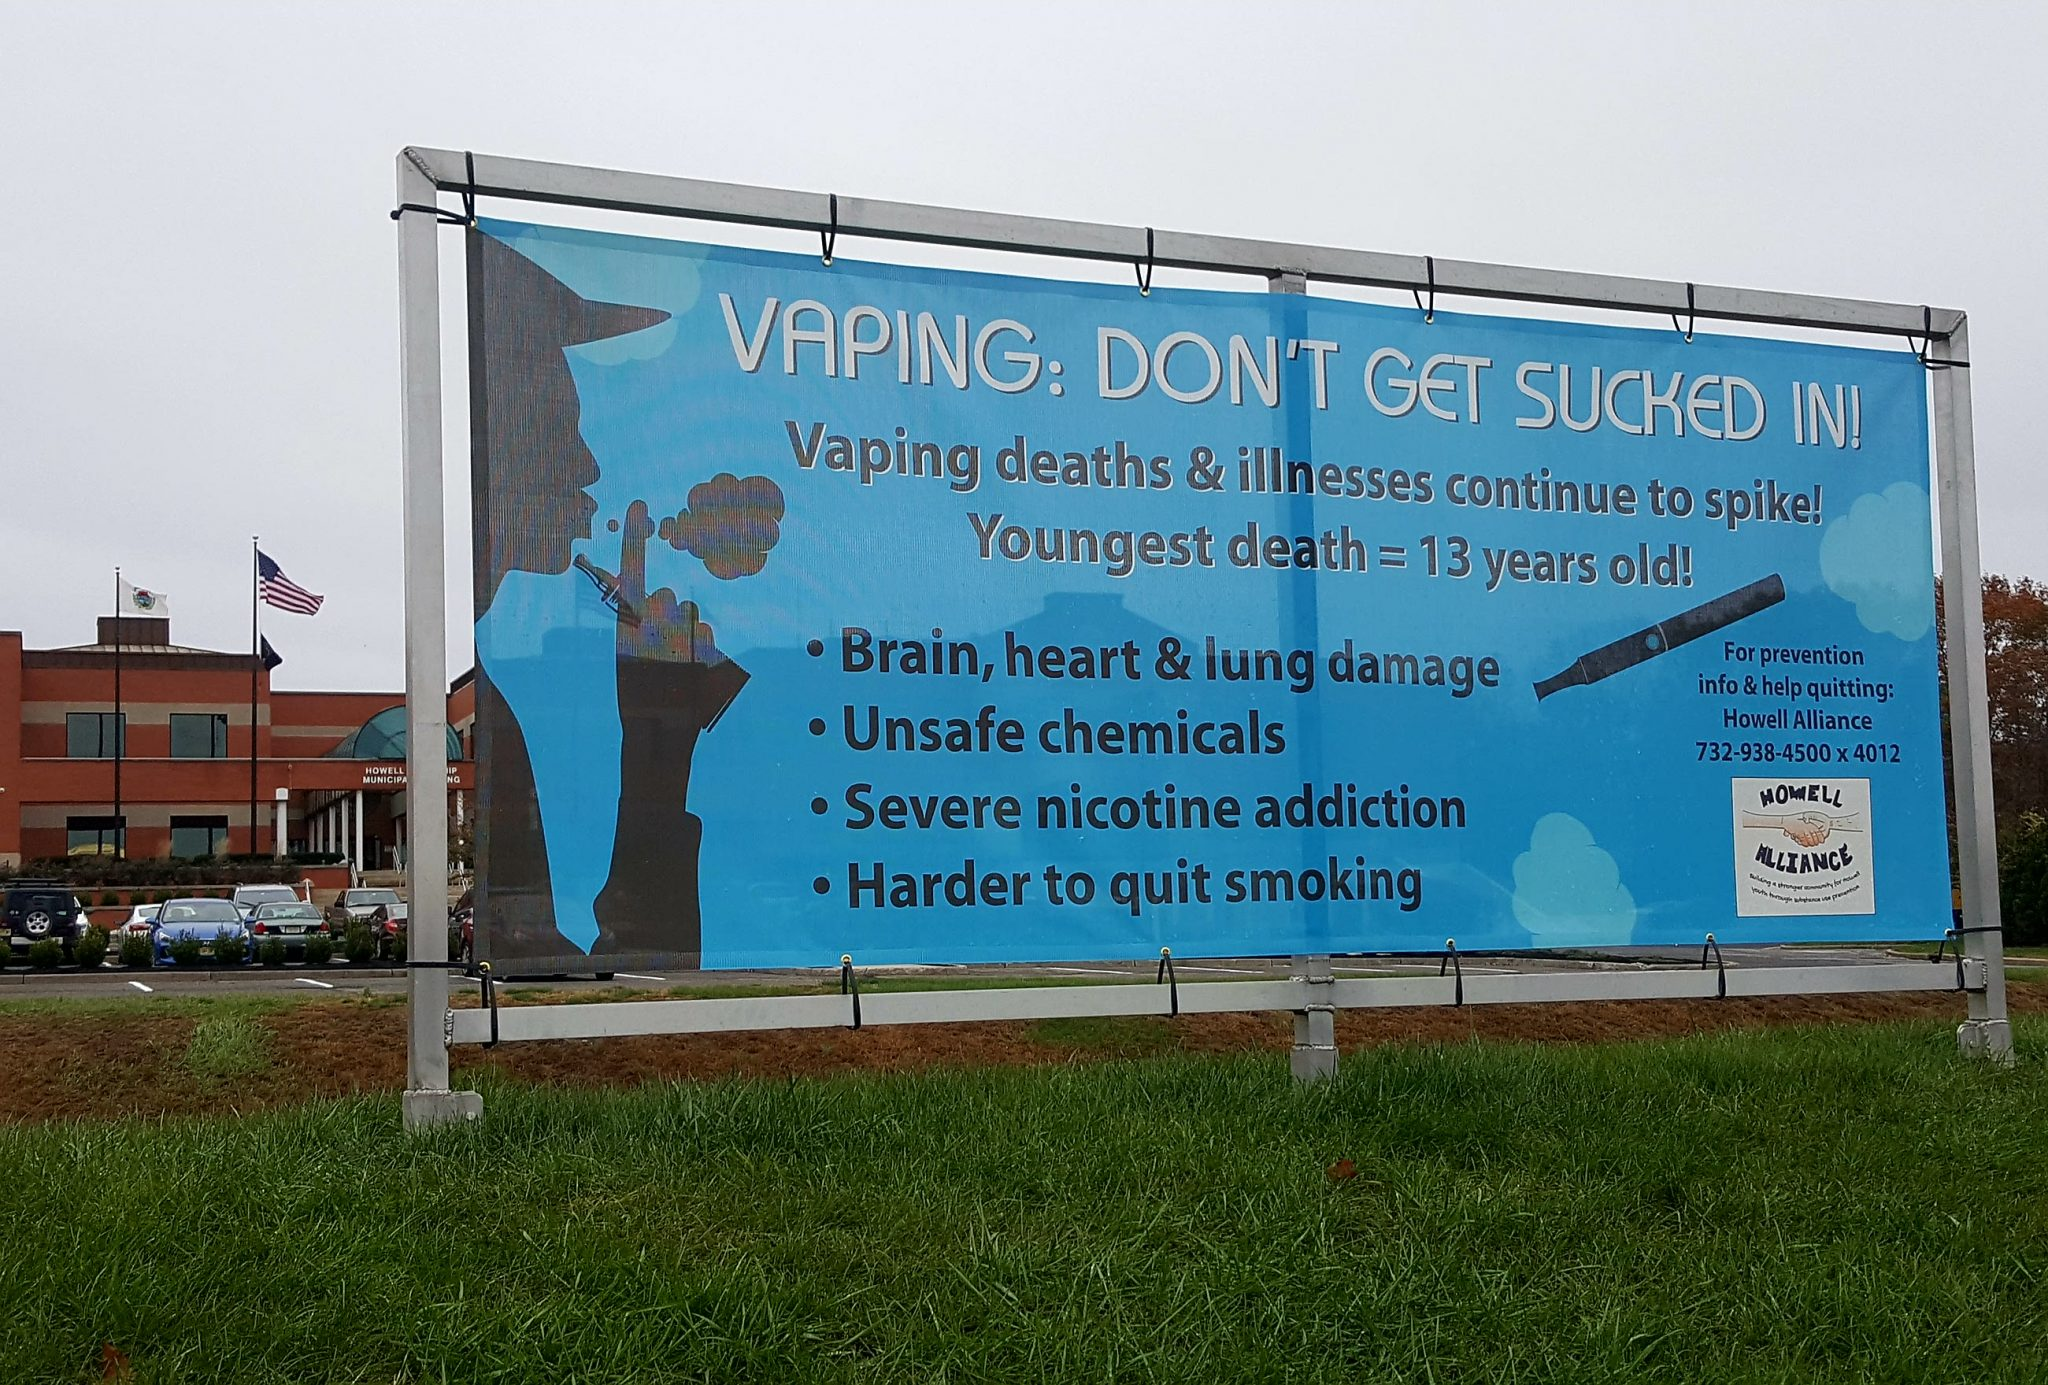 Vapers should be given help to quit, says expert